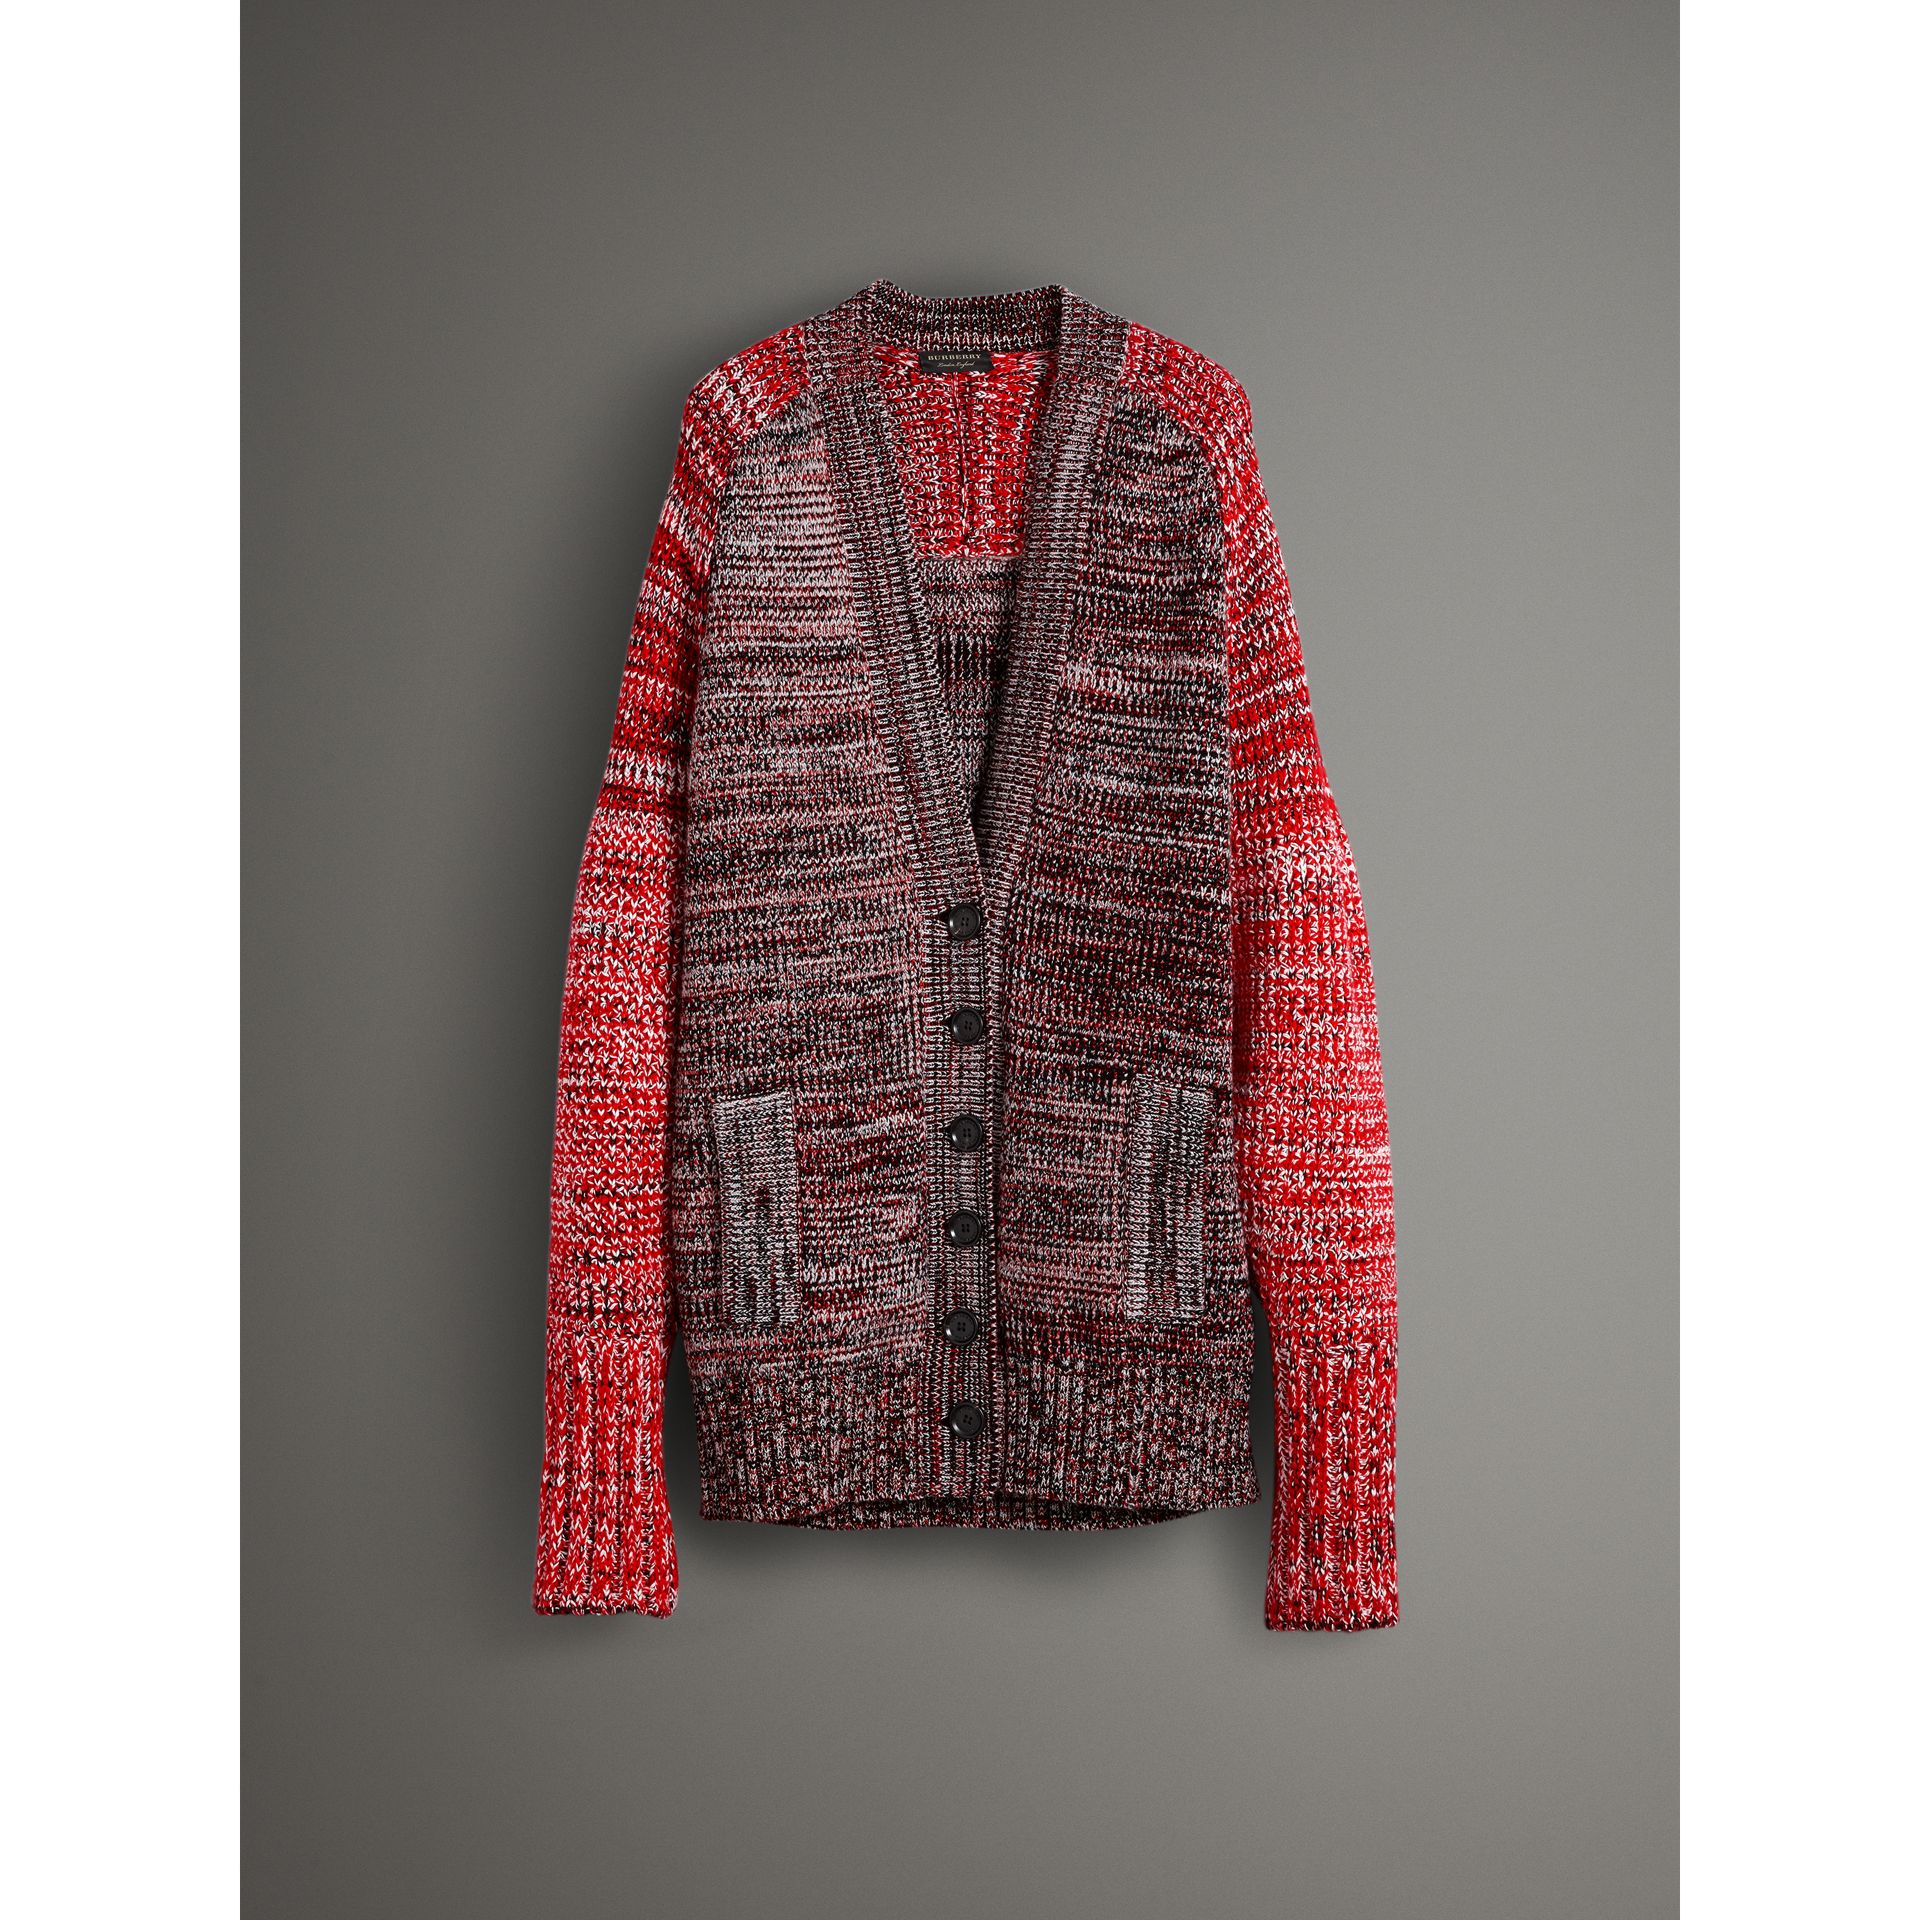 Cashmere Wool Blend Mouliné Oversized Cardigan in Red/black - Women | Burberry Australia - gallery image 3